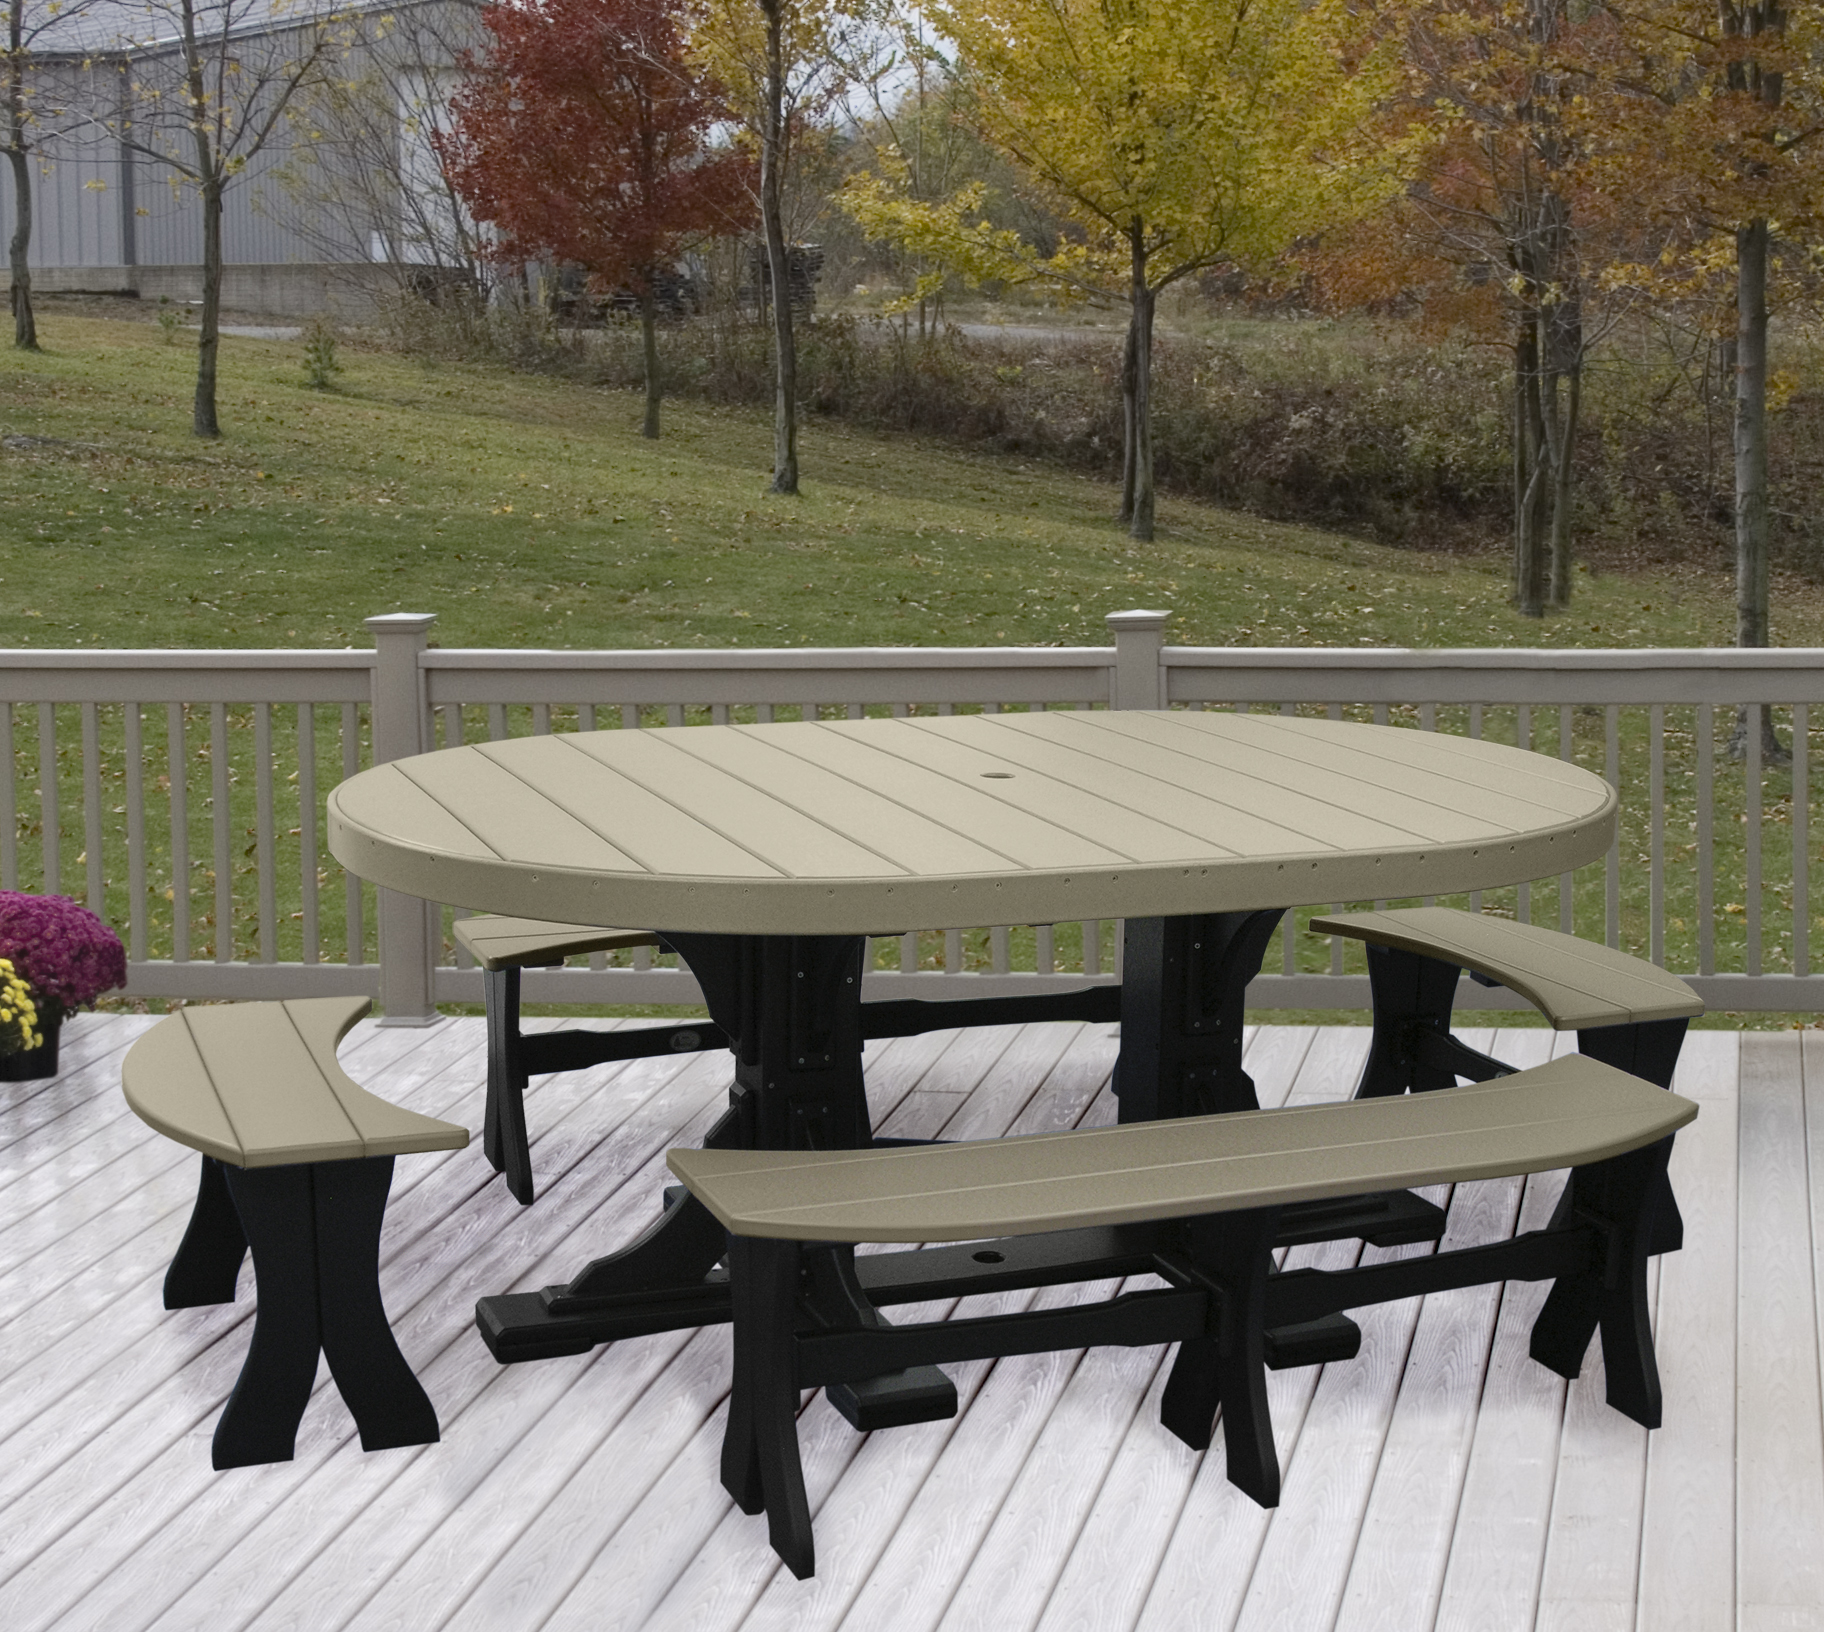 Dining Benches And Tables: Oval Table 5-Piece Bench Dining Set